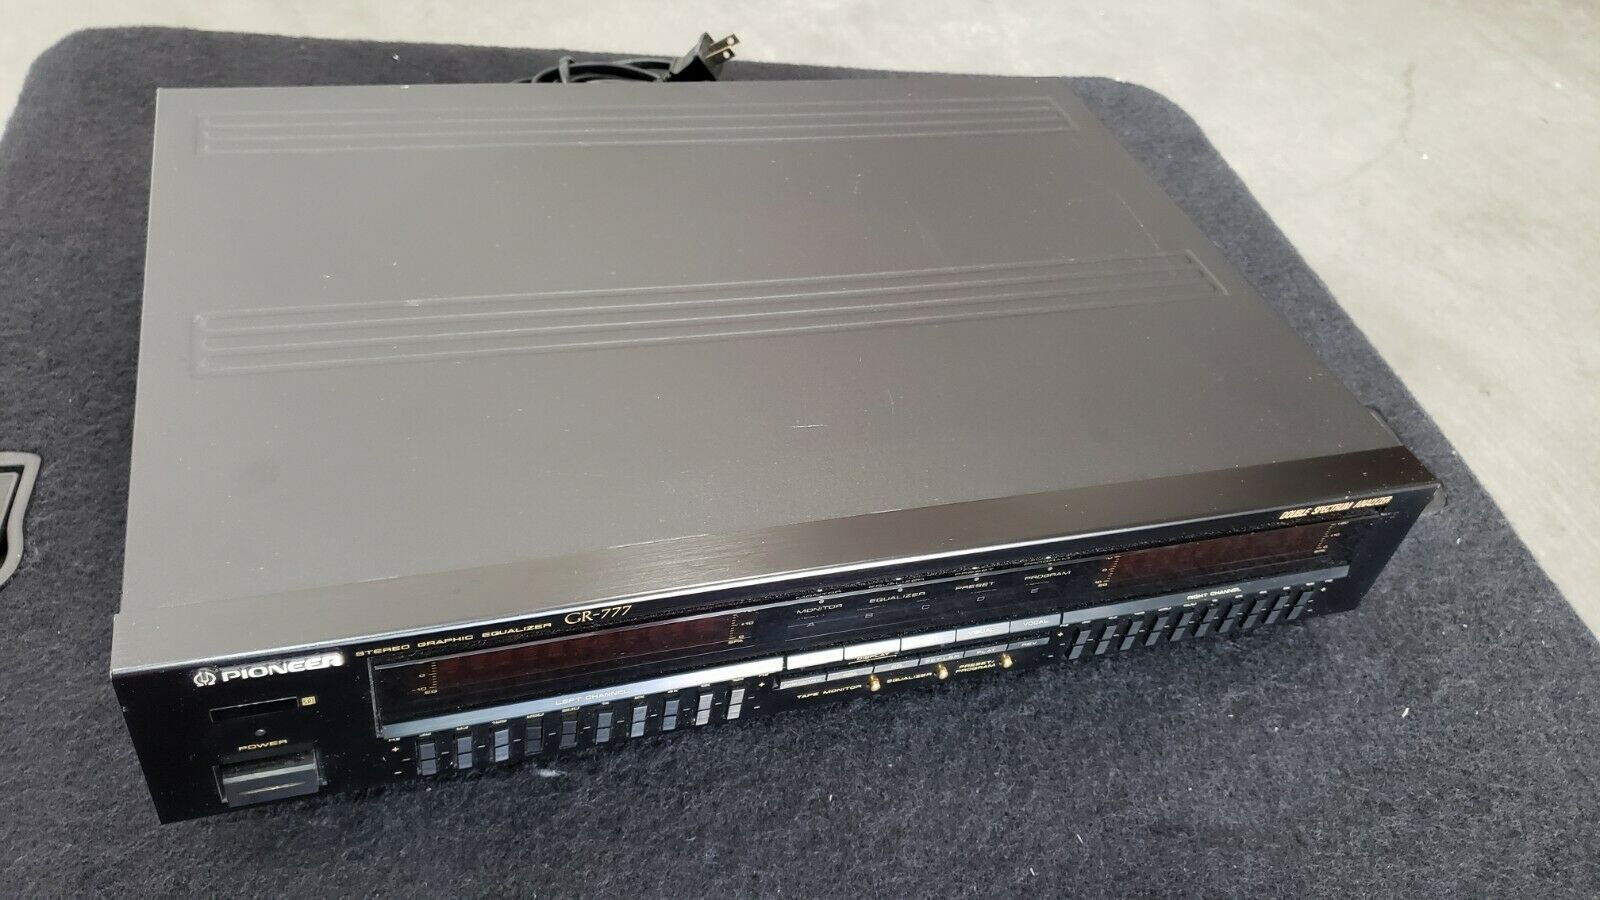 Pioneer Stereo graphic equalizer, GR-777. Buy it now for 280.00